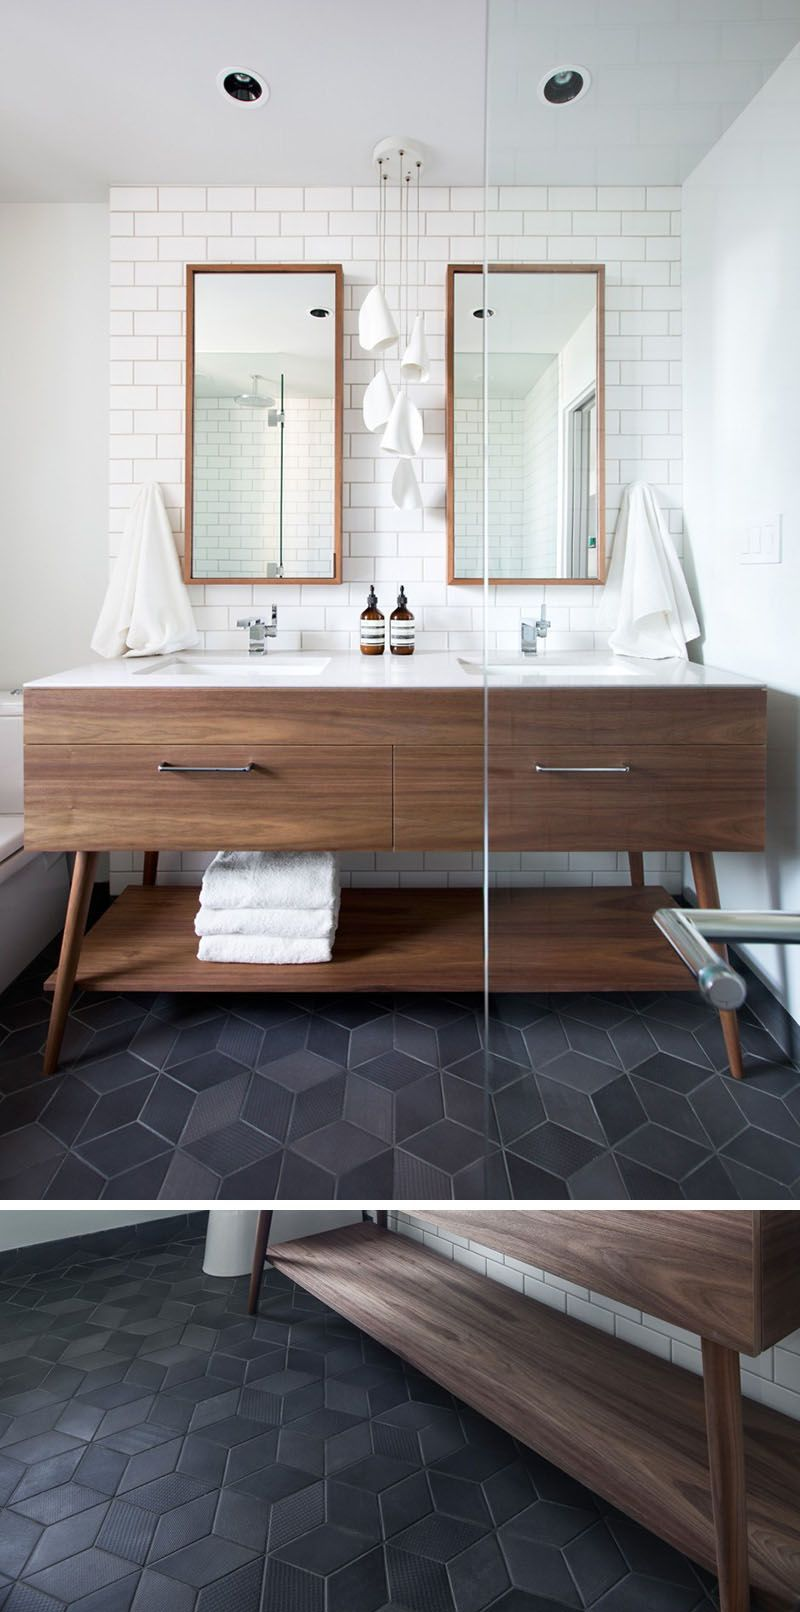 unique bathroom tile patterns. 8 Examples Of Tile Flooring With Geometric Patterns // Dark Textured Diamond Tiles Make Up The Floor Bathroom In This Vancouver Apartment. Unique